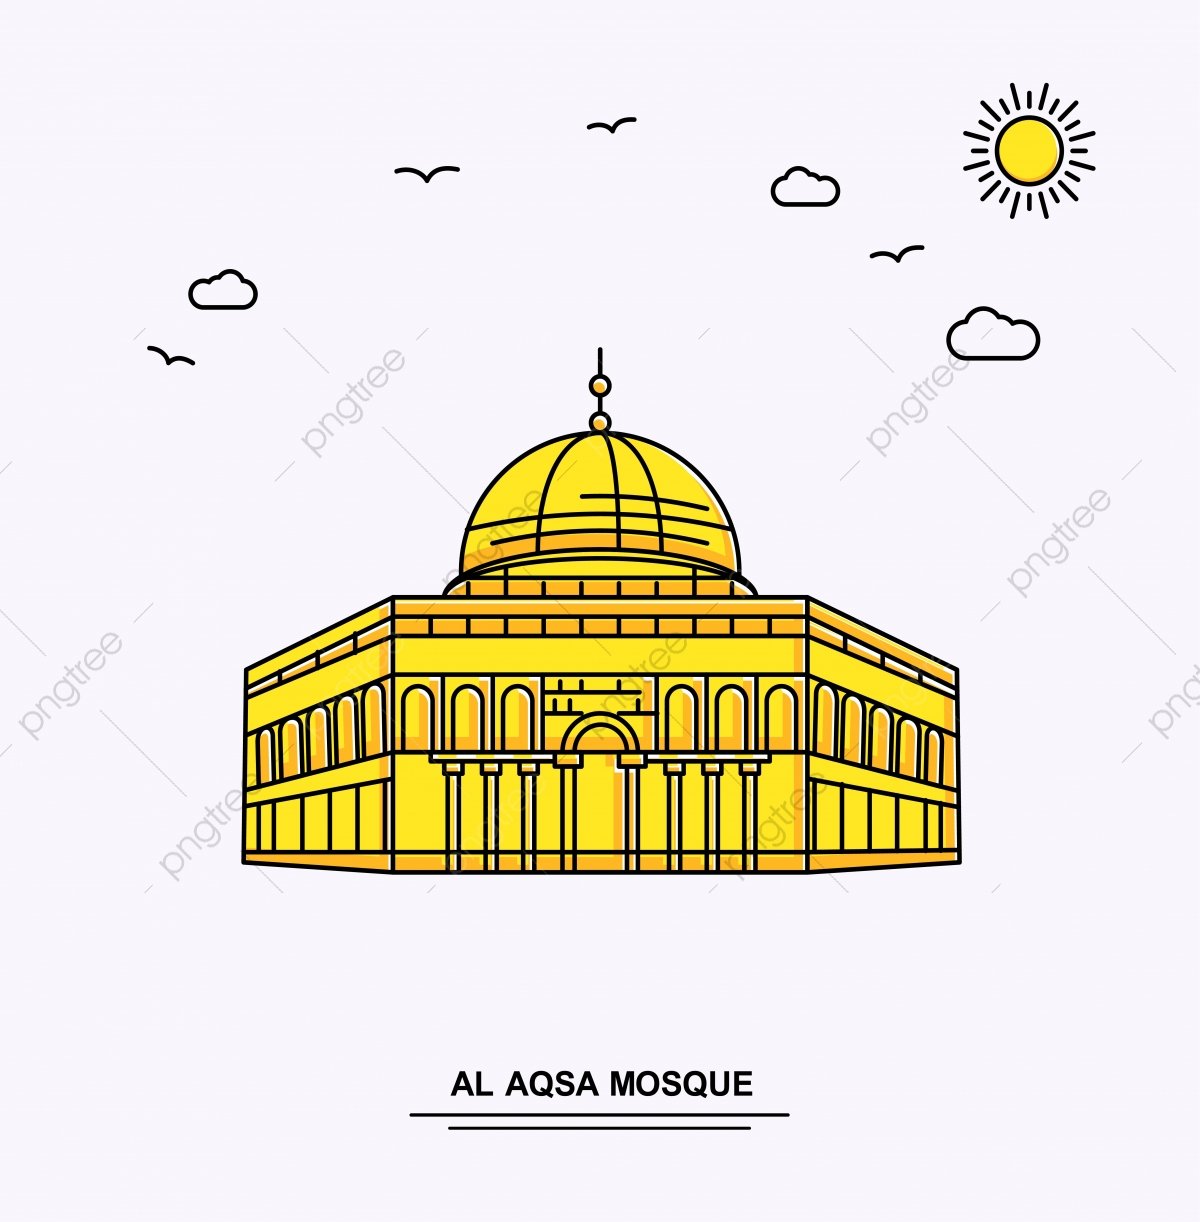 Al Aqsa Mosque Png Vector Psd And Clipart With Transparent Background For Free Download Pngtree